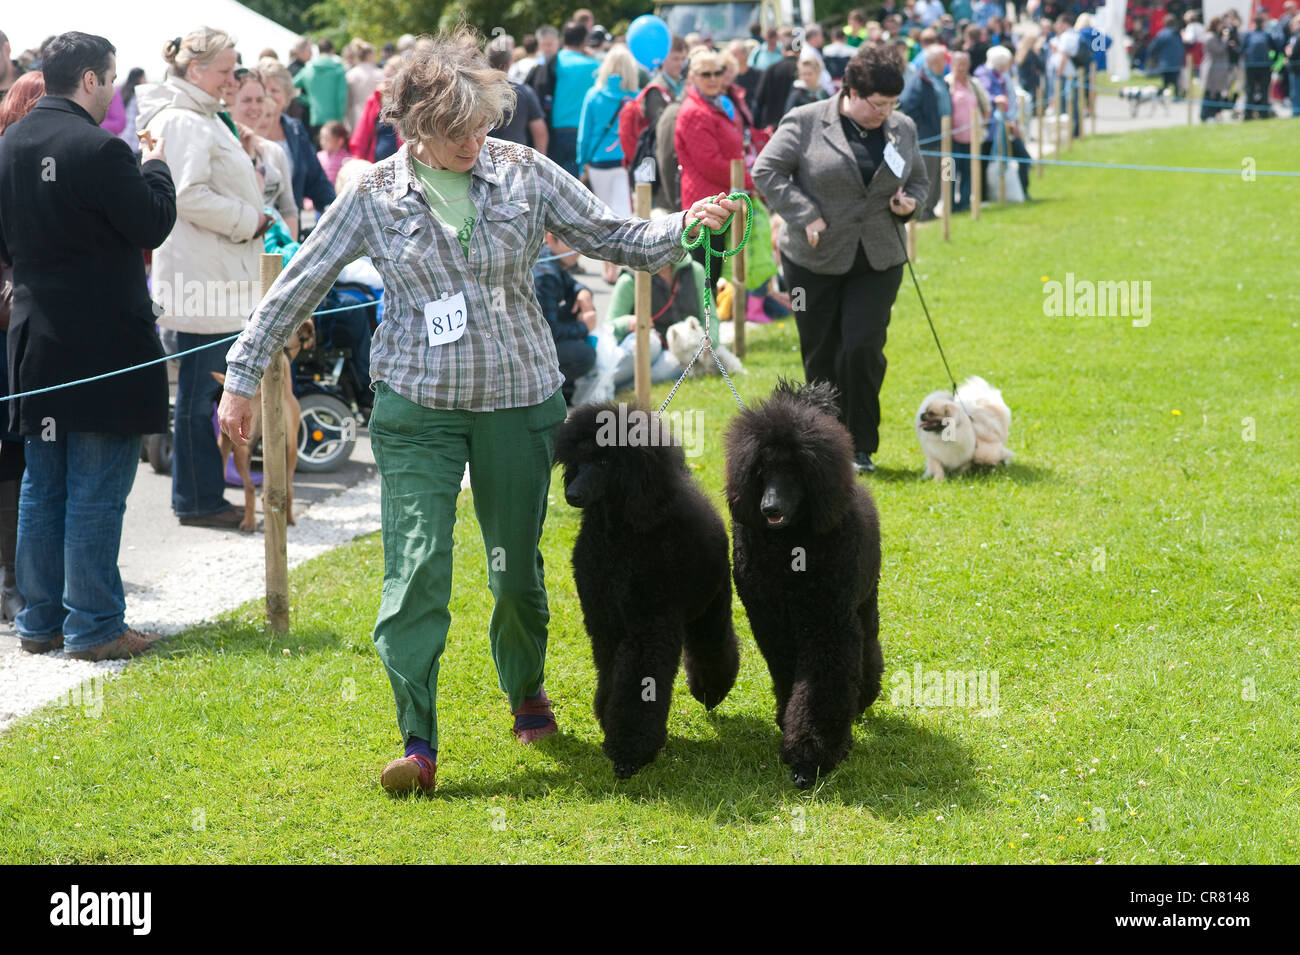 Cornwall, England, UK - Royal Cornwall Show, woman exhibiting two adult poodles at  a dog exhibition. - Stock Image